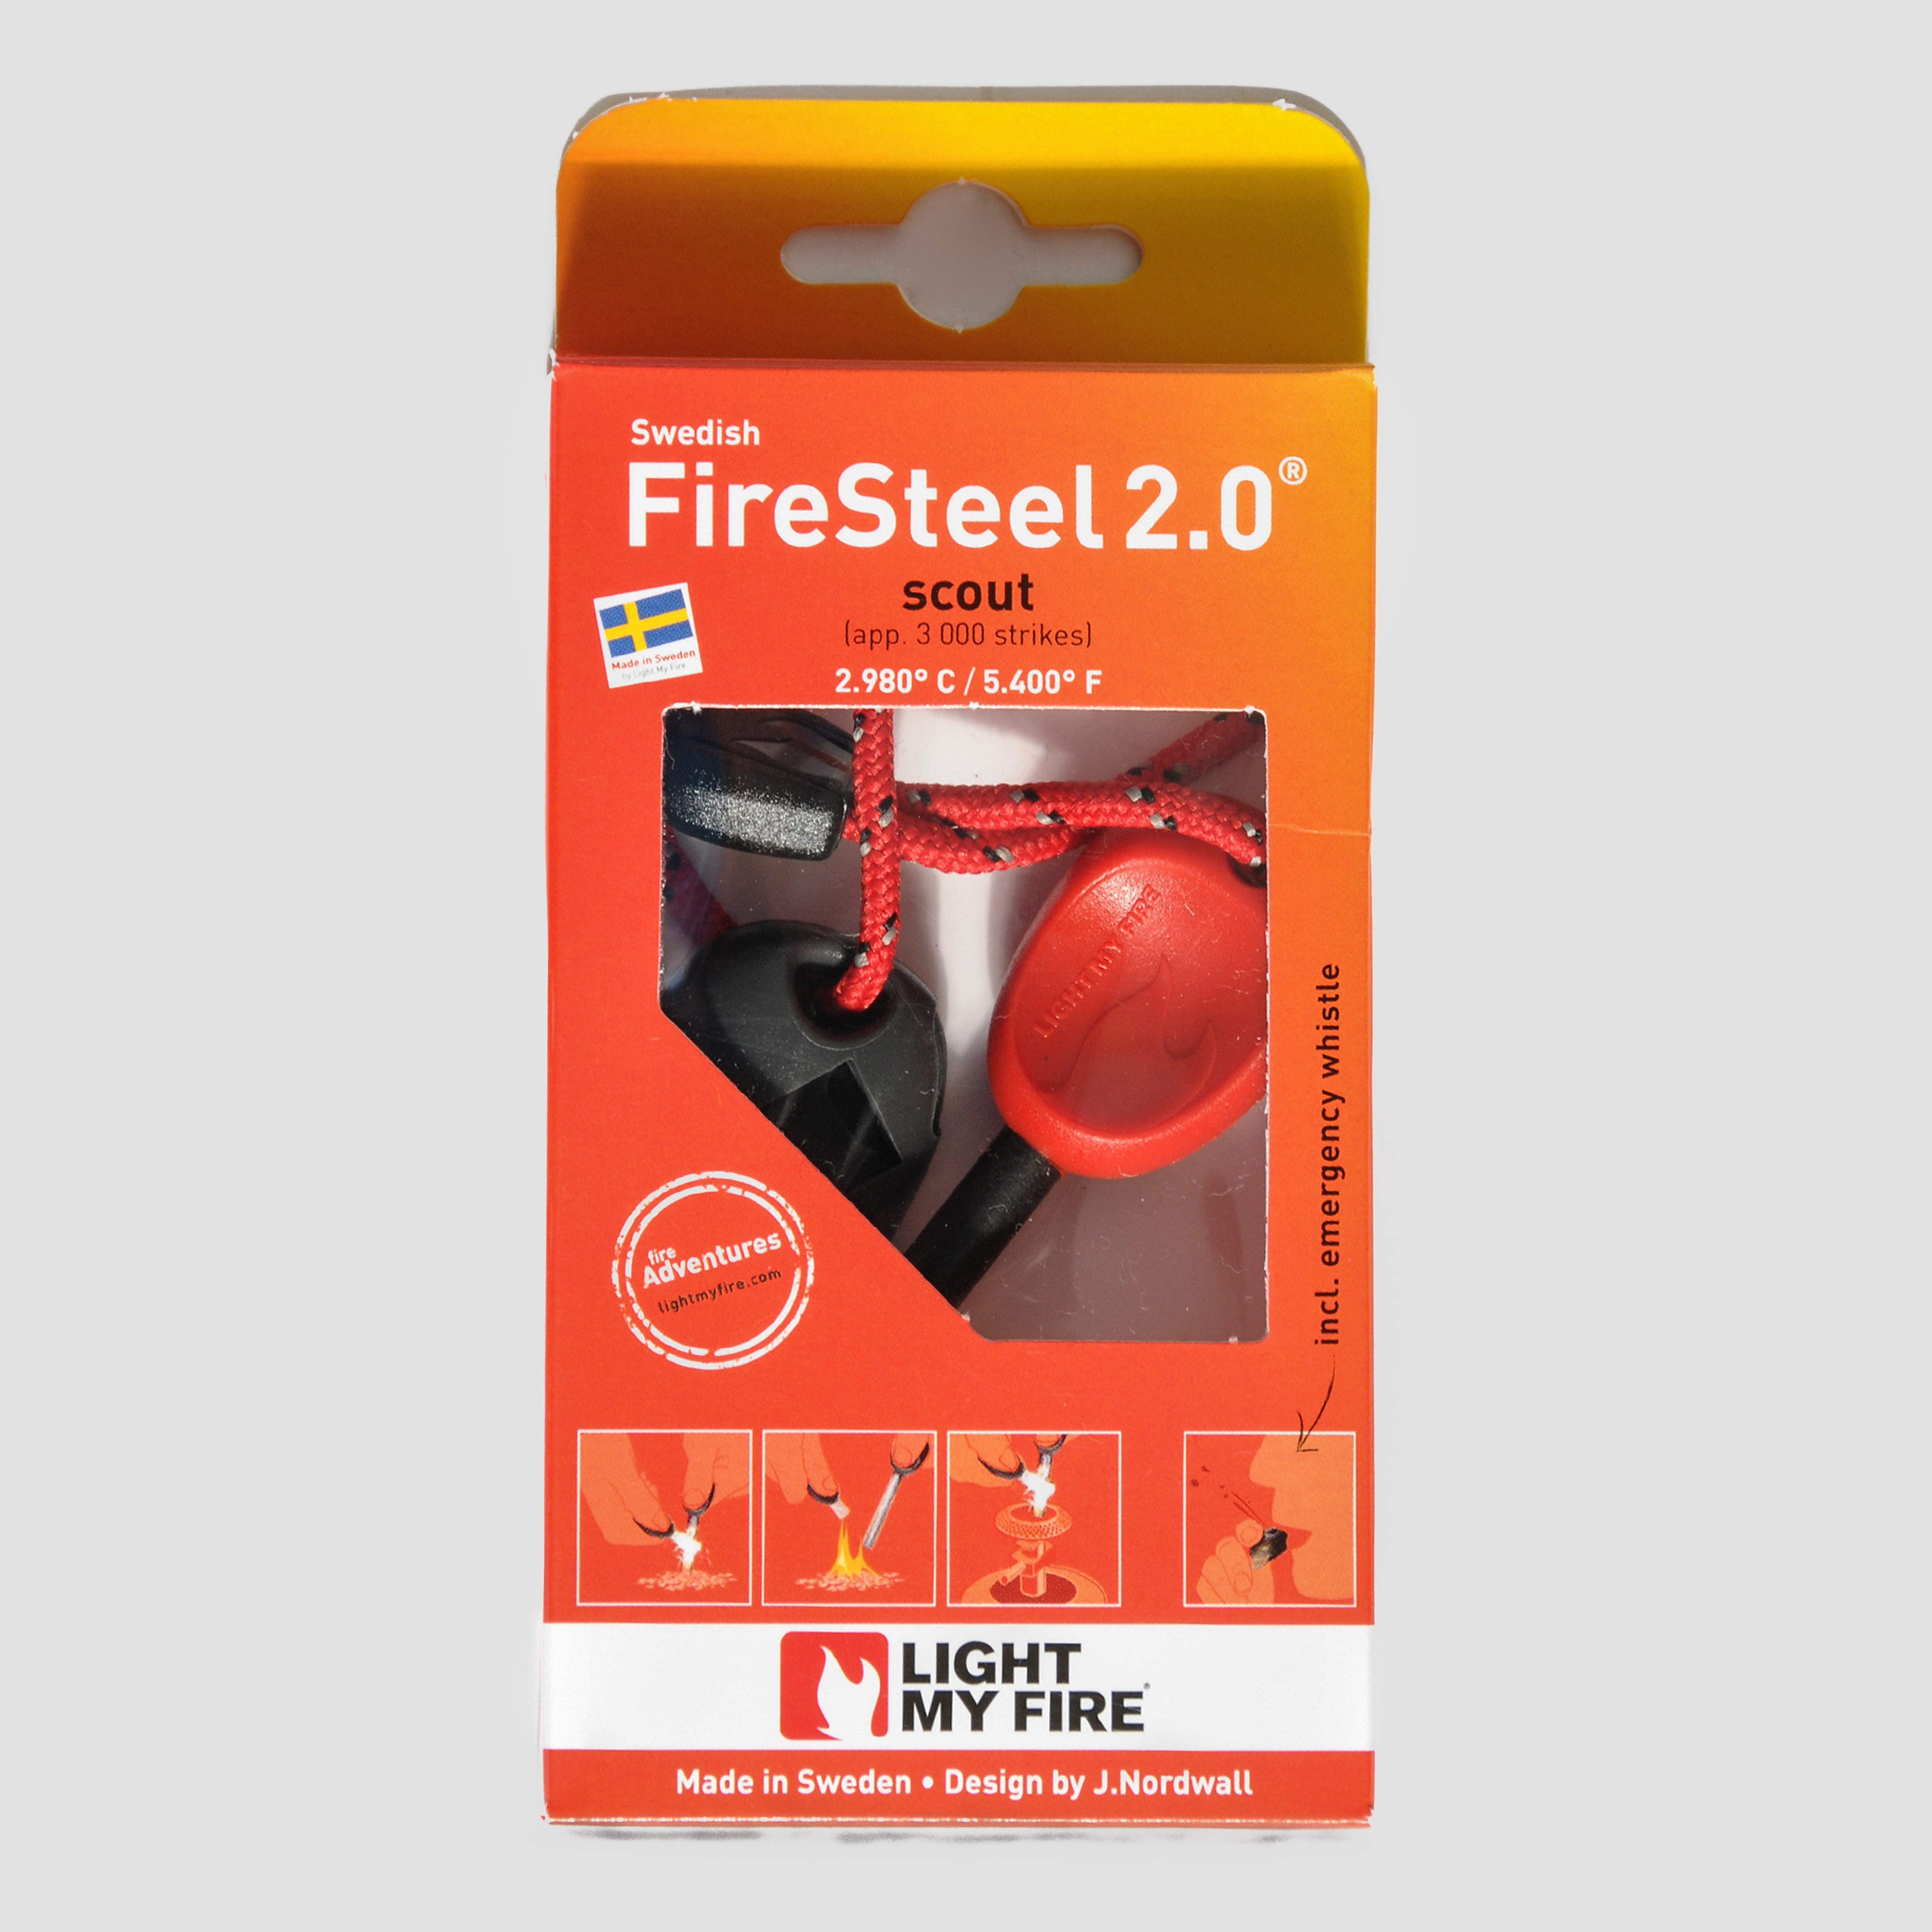 Light My Fire Swedish FireSteel 2.0 Scout Fire Starter